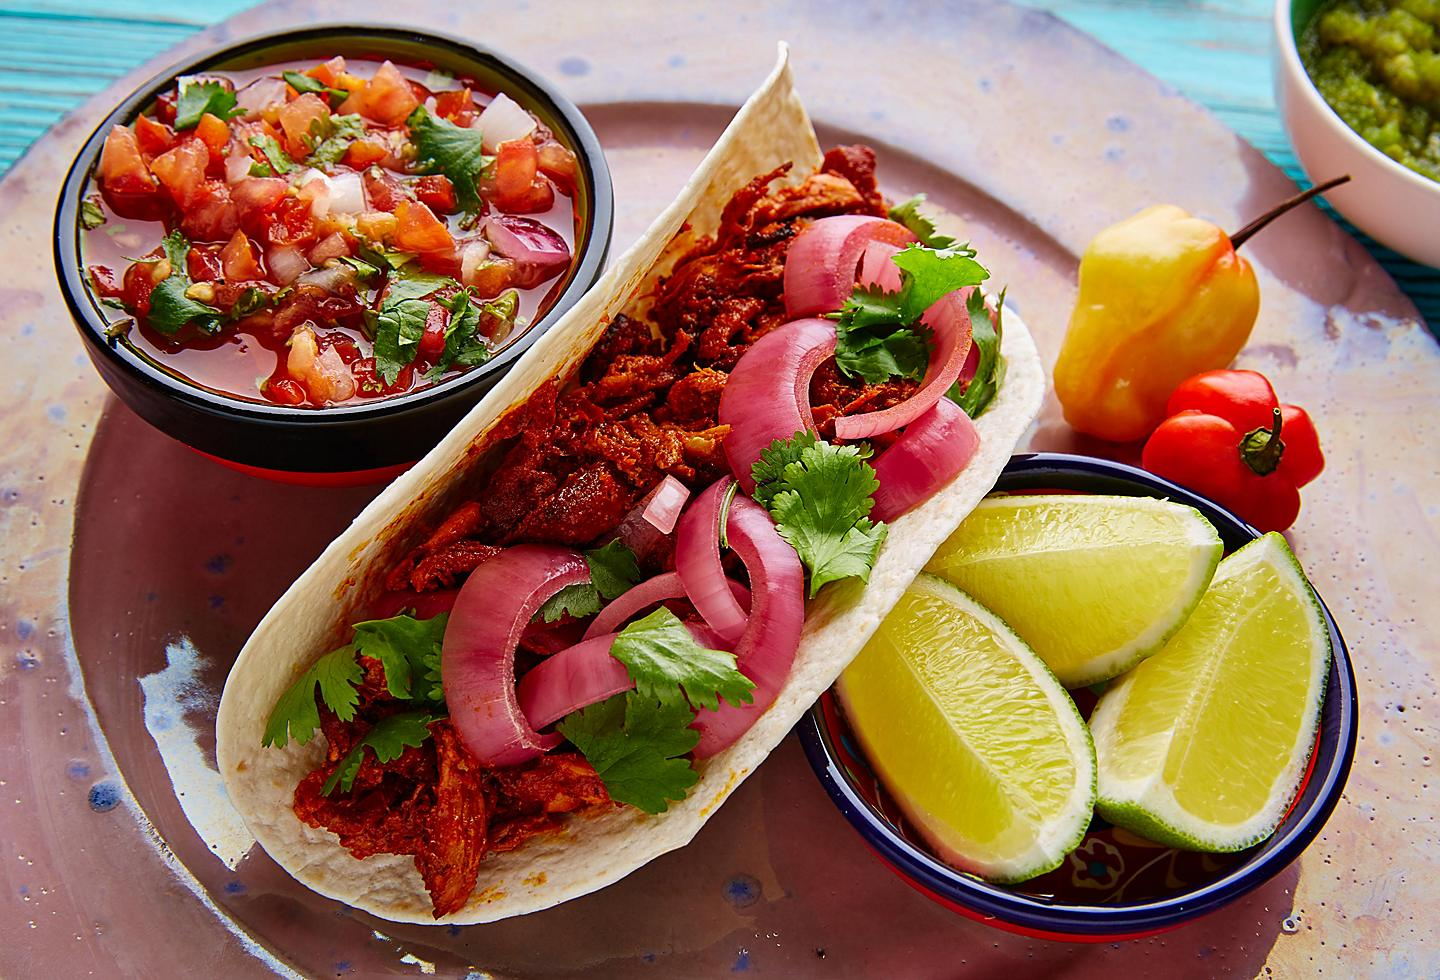 Mexican Conchinita Pibil Taco with Lime and Pico de Gallo